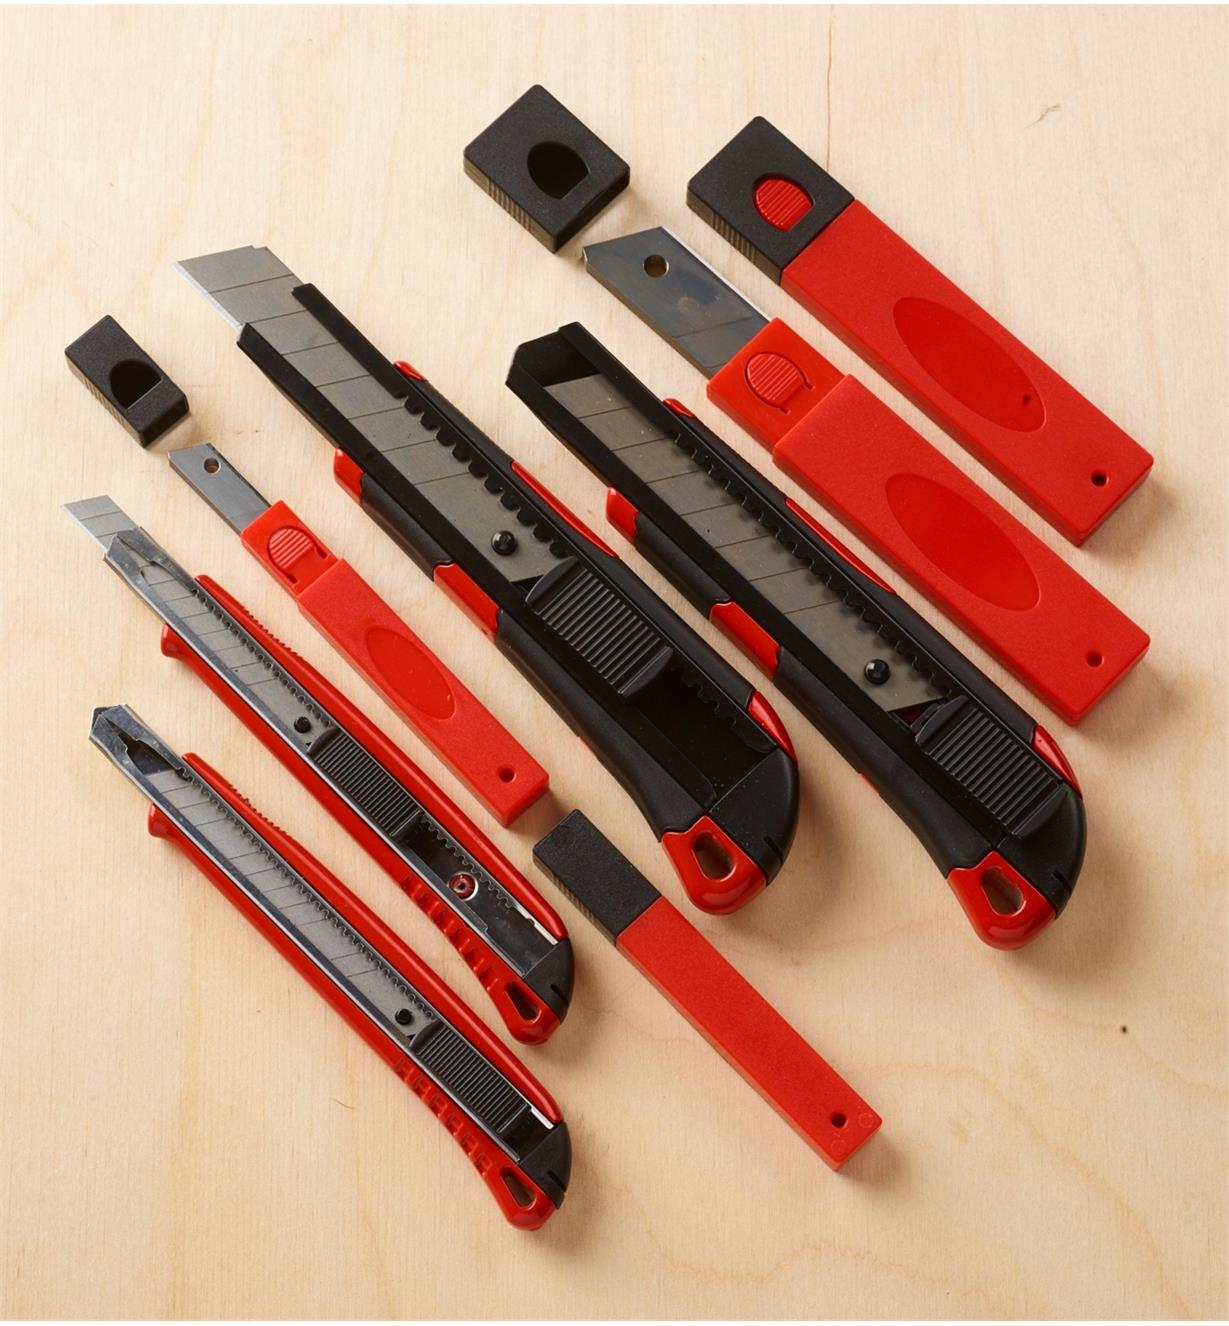 99W3983 - 8-Piece Utility Knife Set